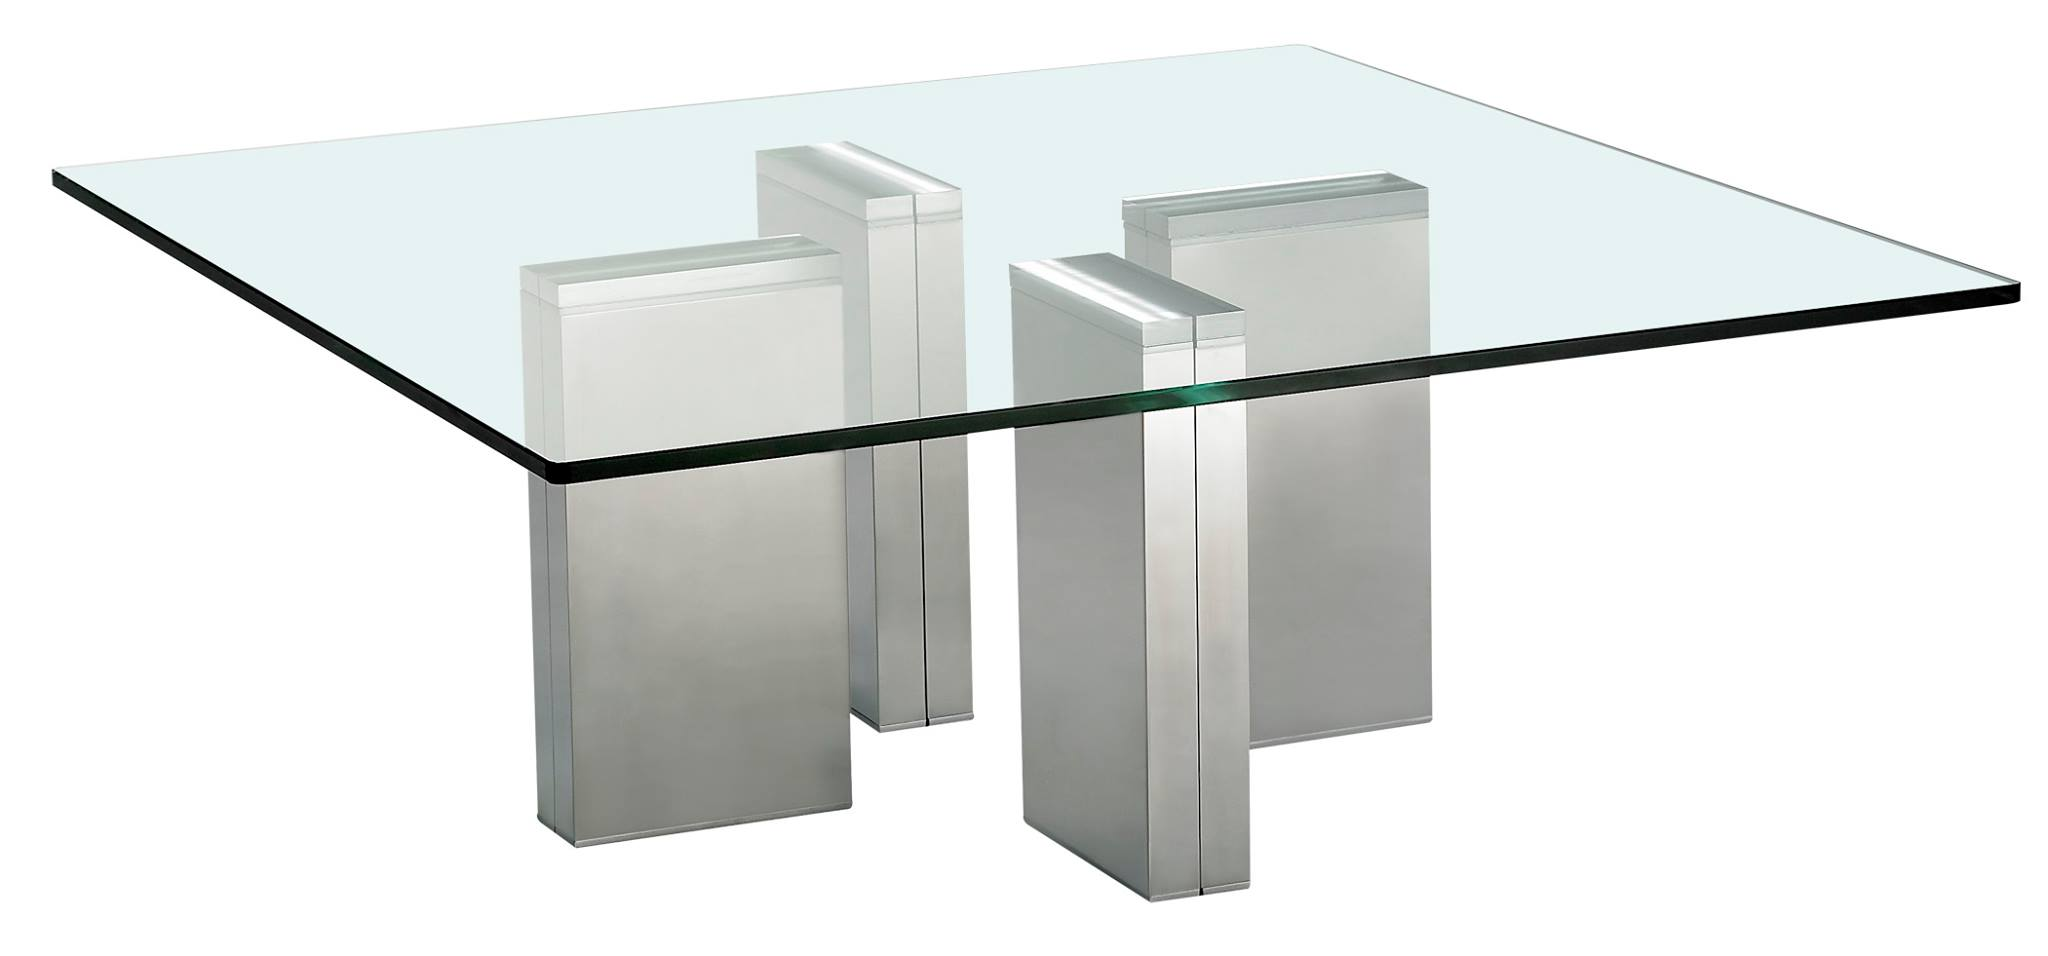 Table basse verre tremp et acier chrom brick eda concept - Table basse verre but ...